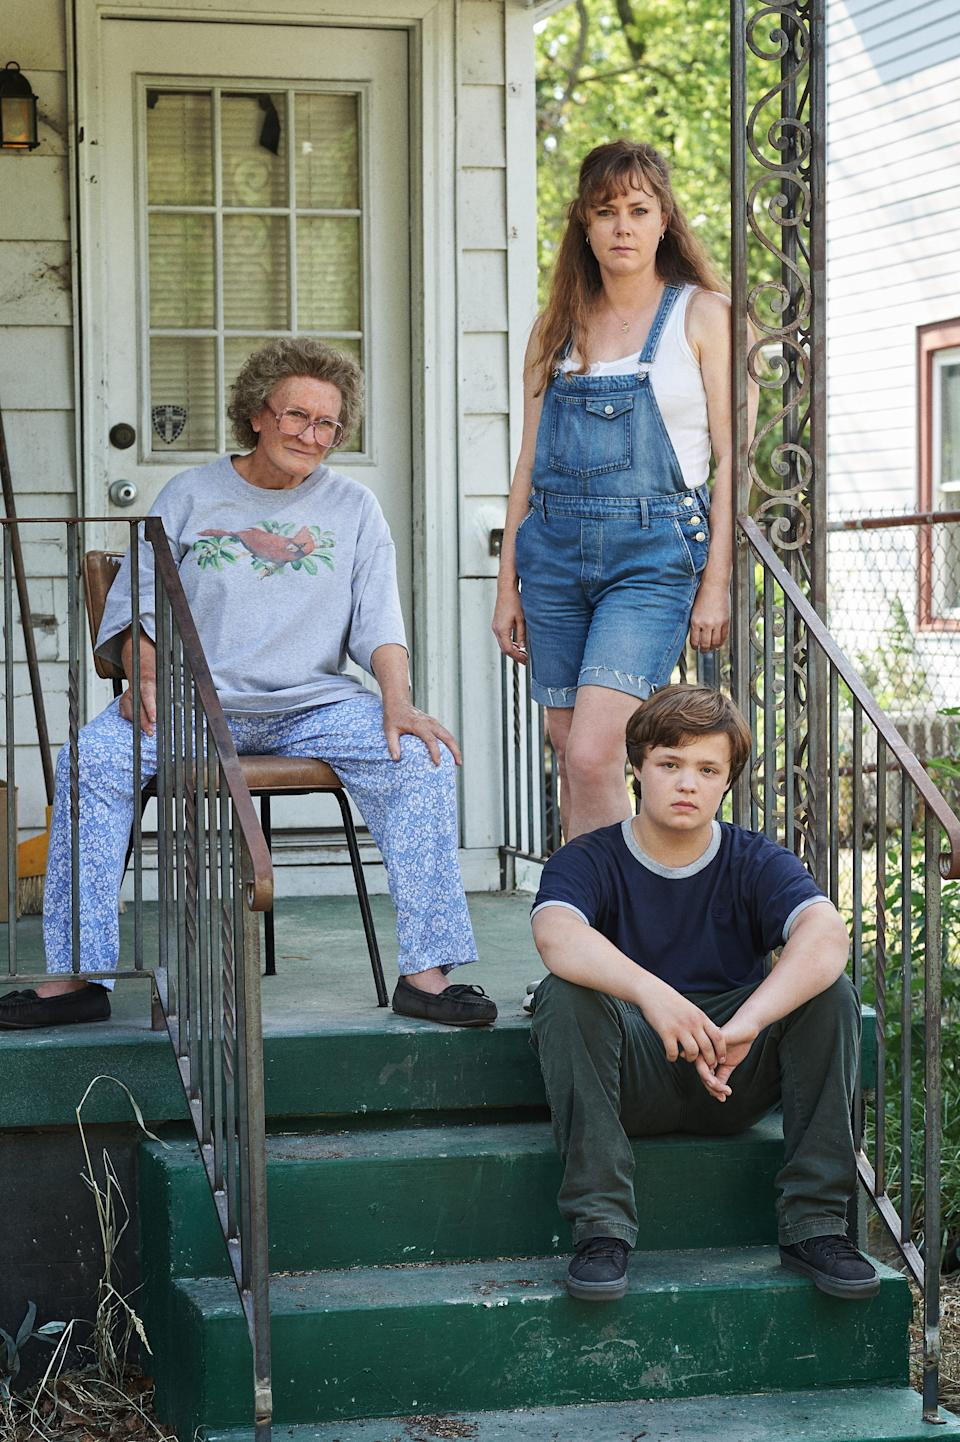 """Glenn Close (left) stars as the matriarch trying to keep her family, including her daughter (Amy Adams) and grandson (Owen Asztalos), out of trouble in Ron Howard's """"Hillbilly Elegy."""""""